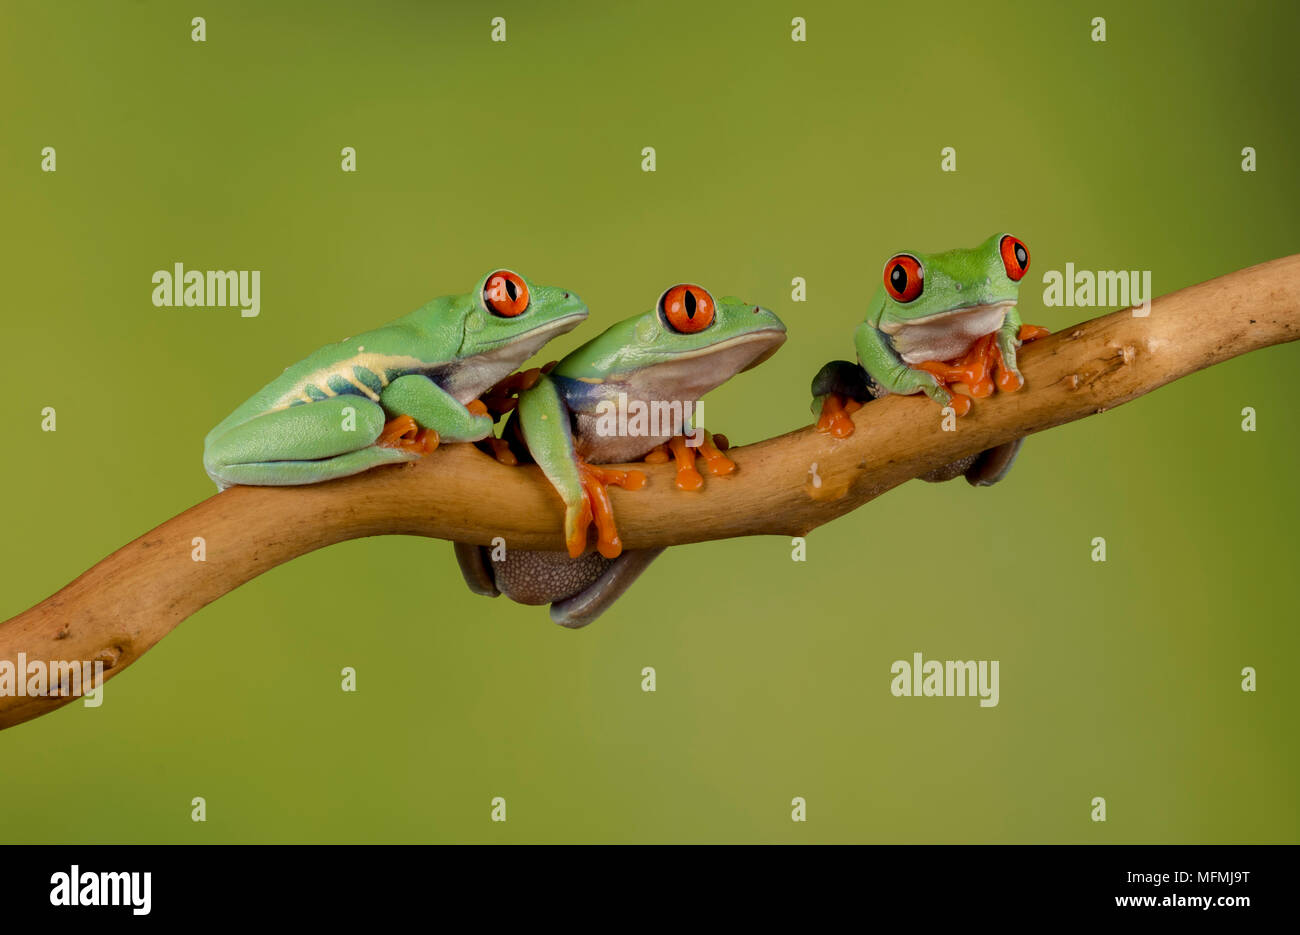 Red eyed tree frogs ina  studio setting - Stock Image